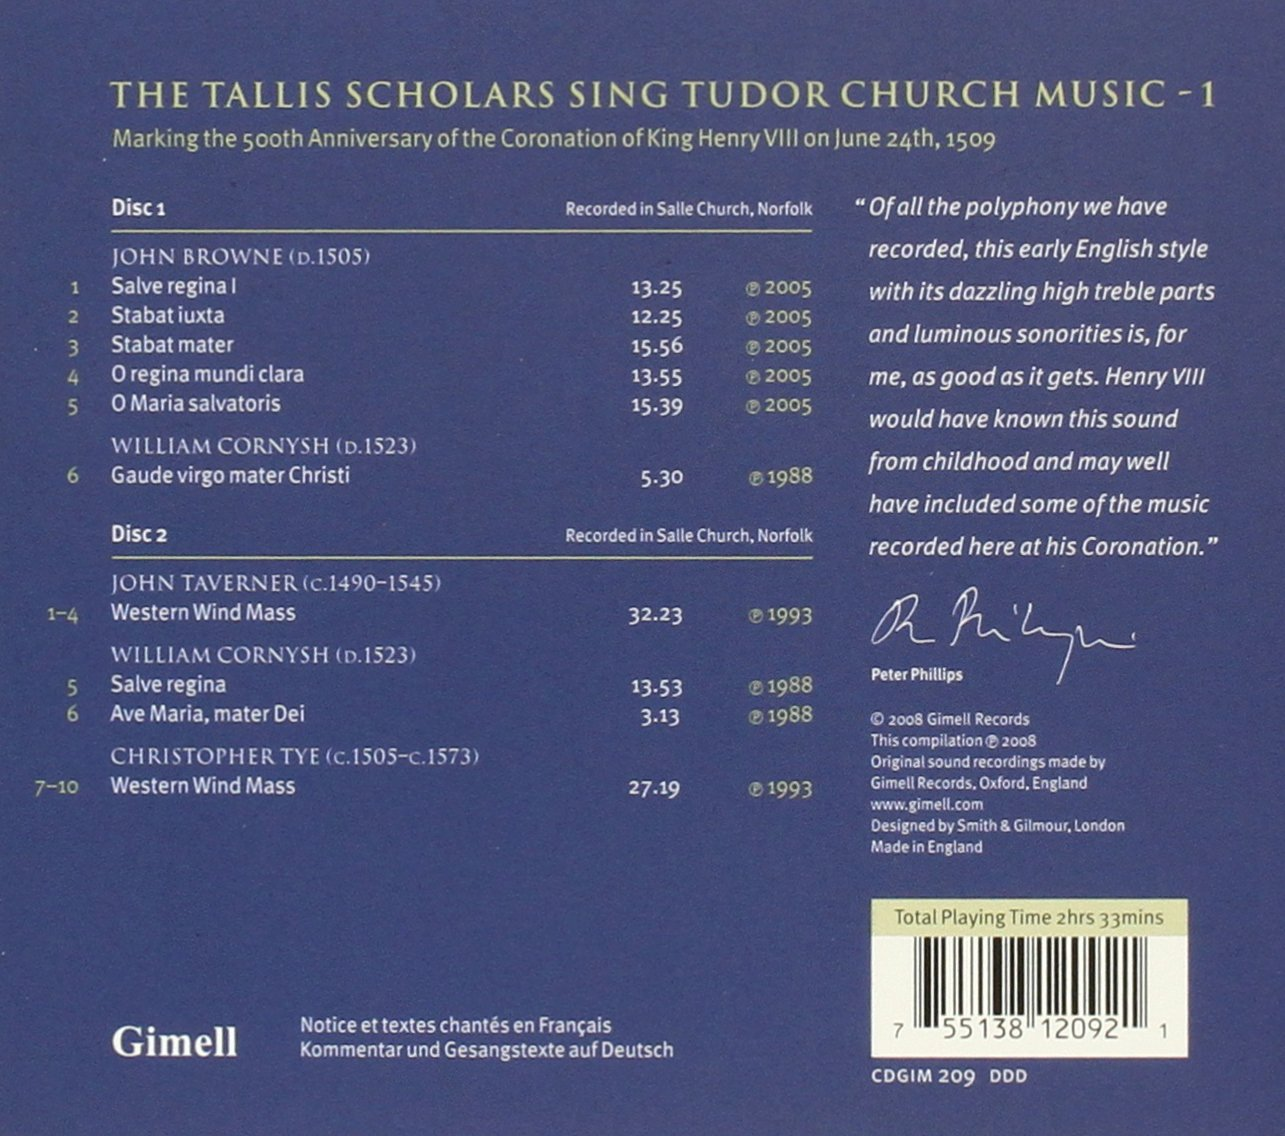 Tudor Church Music 1 by Mundi